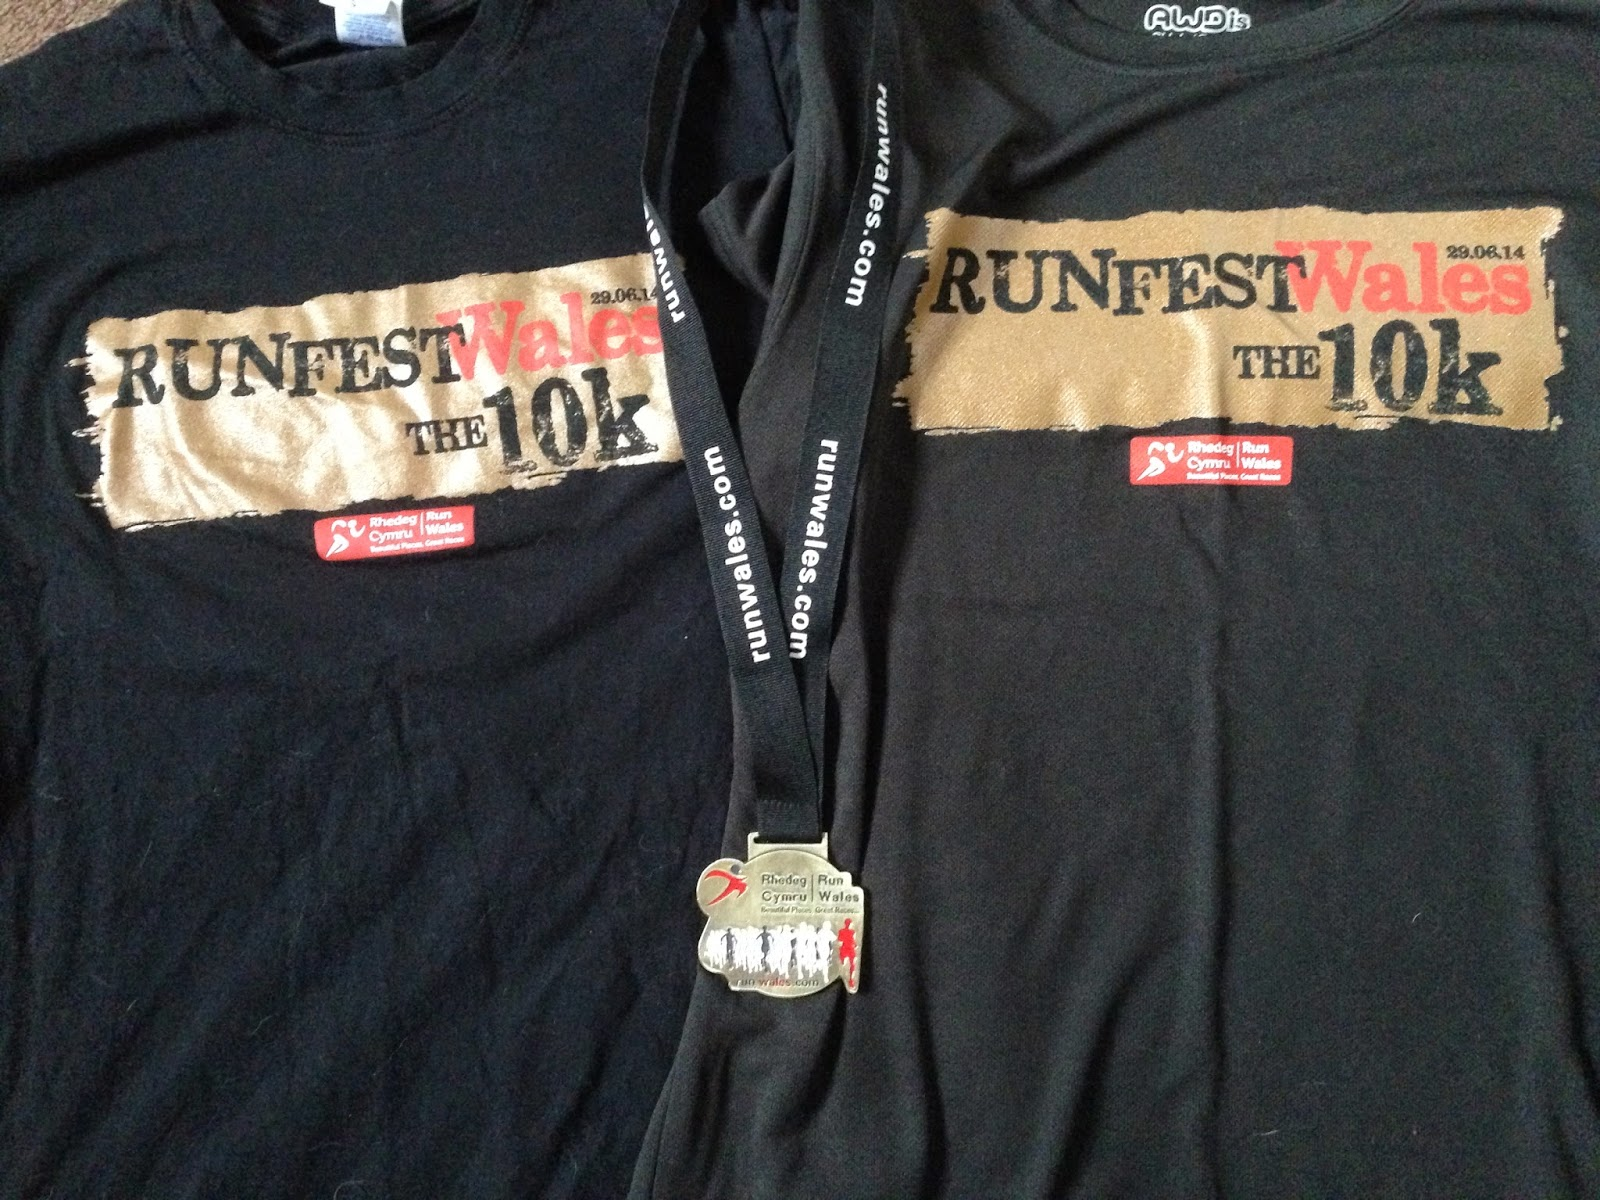 RunFest Wales 10k Medal and T-shirt